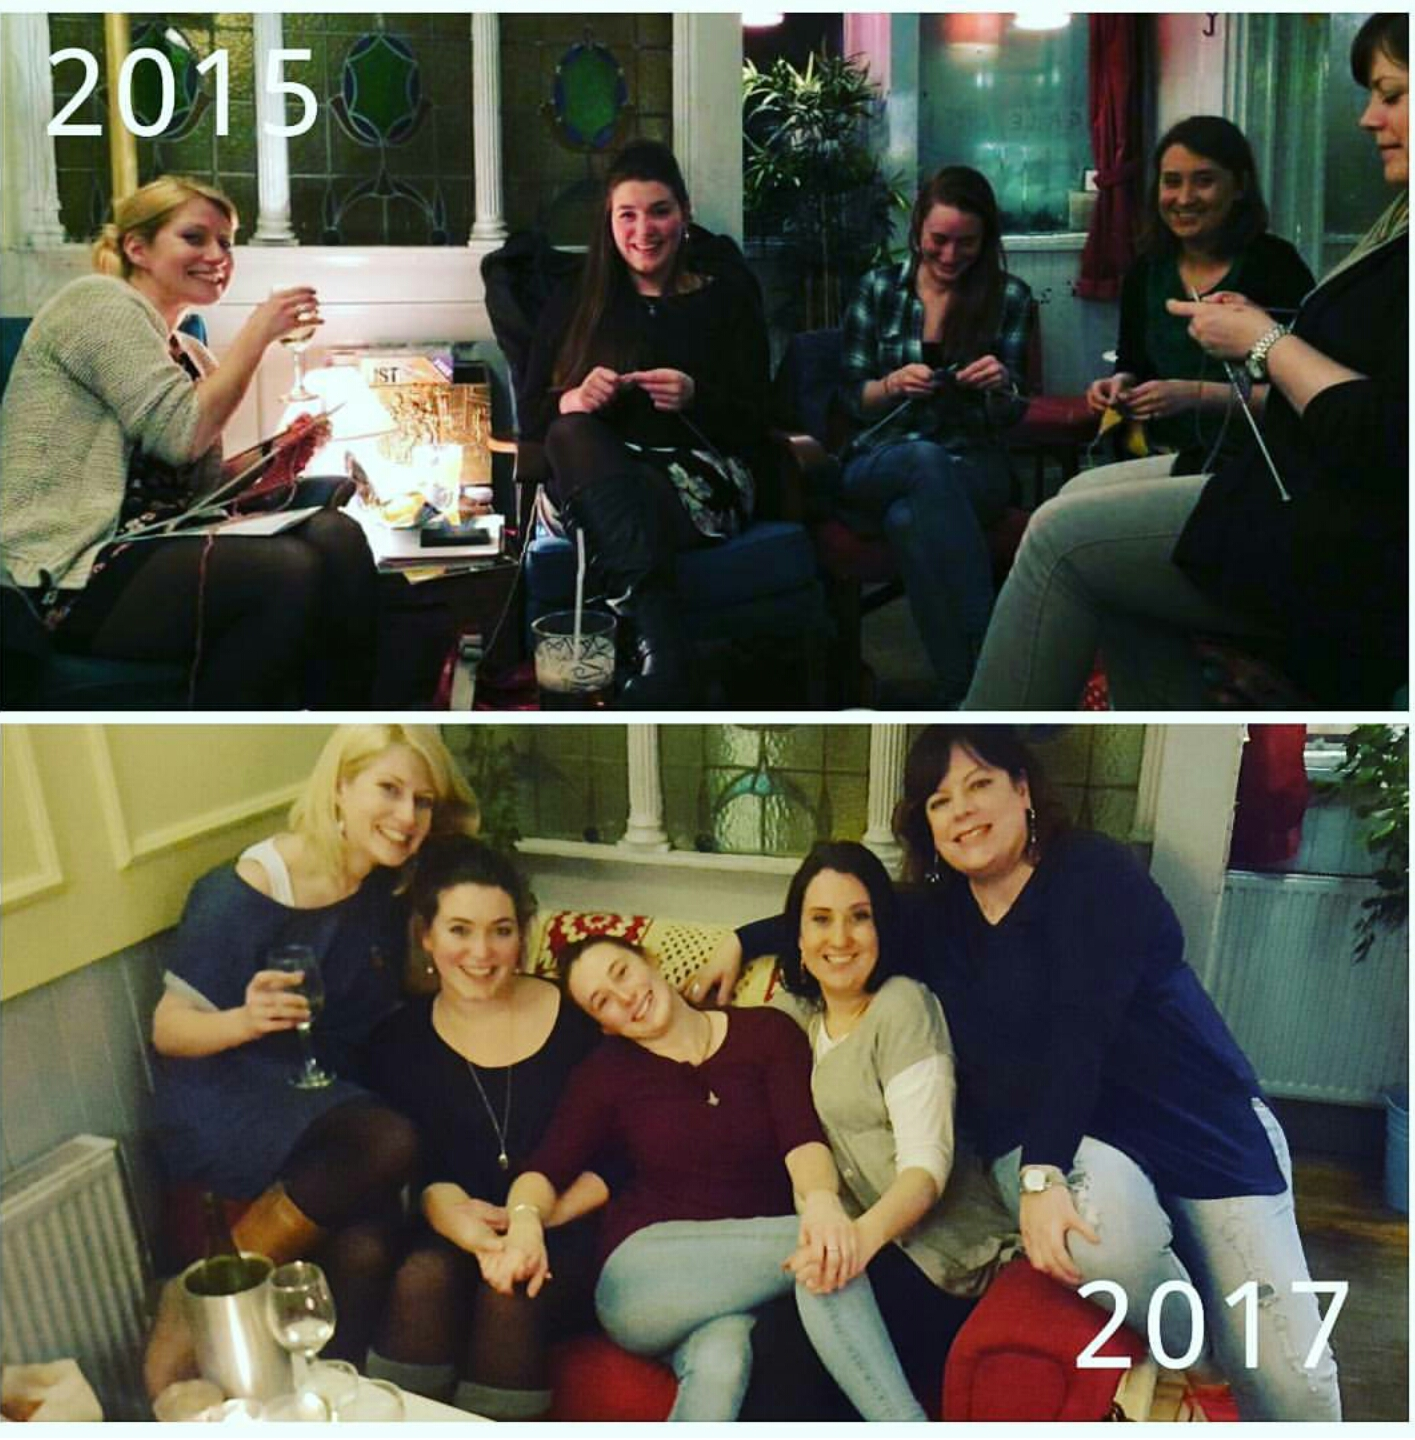 The day we met and our last day all together